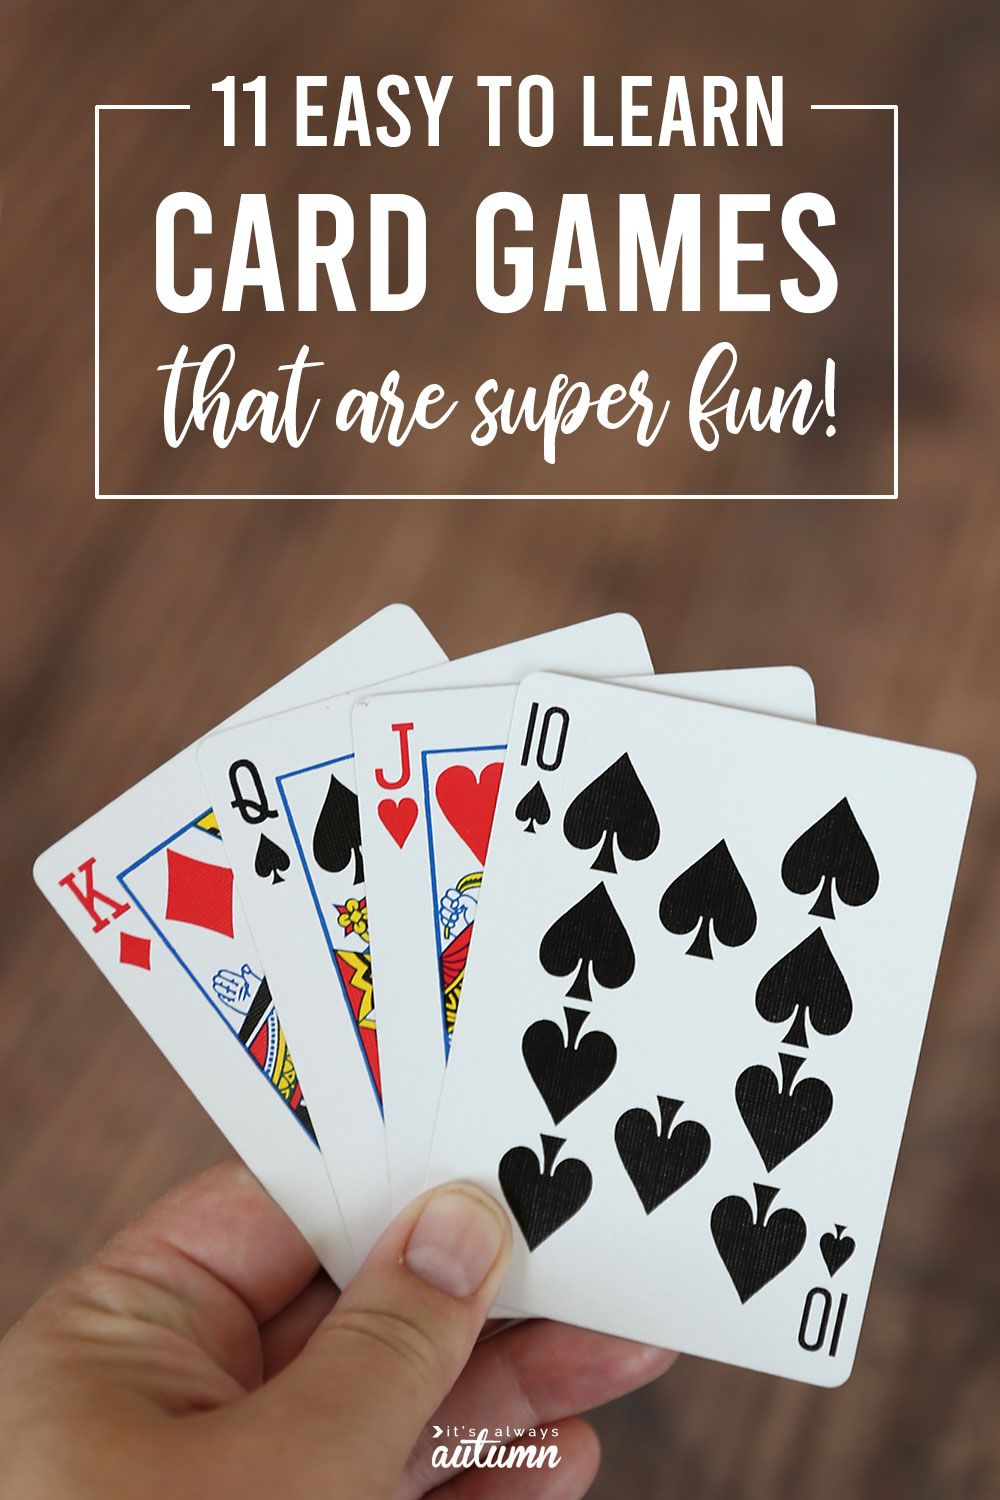 11 Fun + easy cards games for kids and adults! - It's Always Autumn